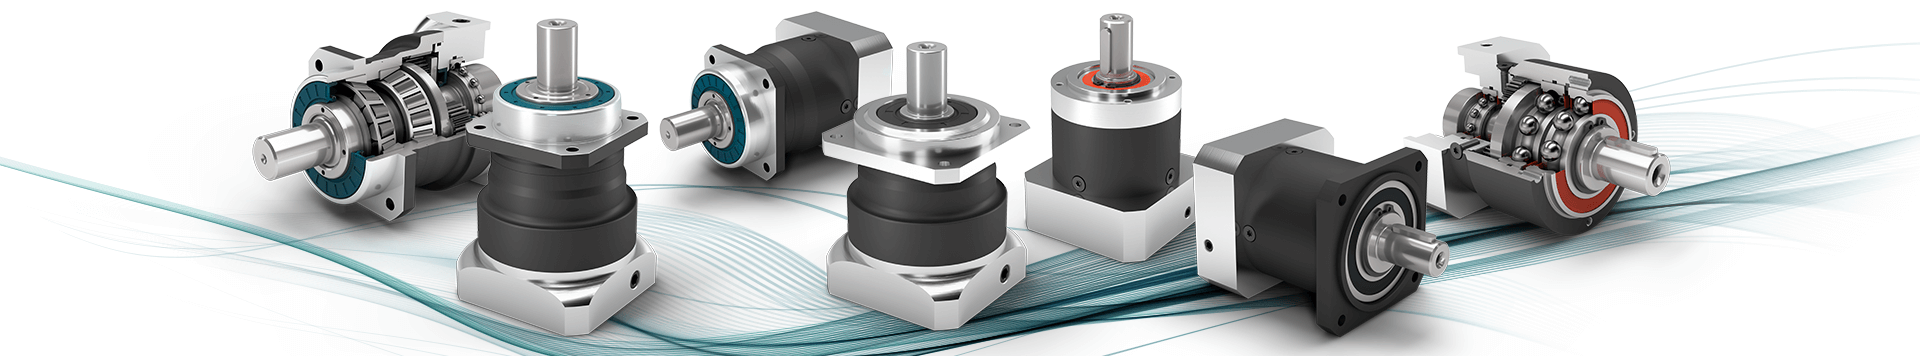 Panetary gearboxes with output shaft.